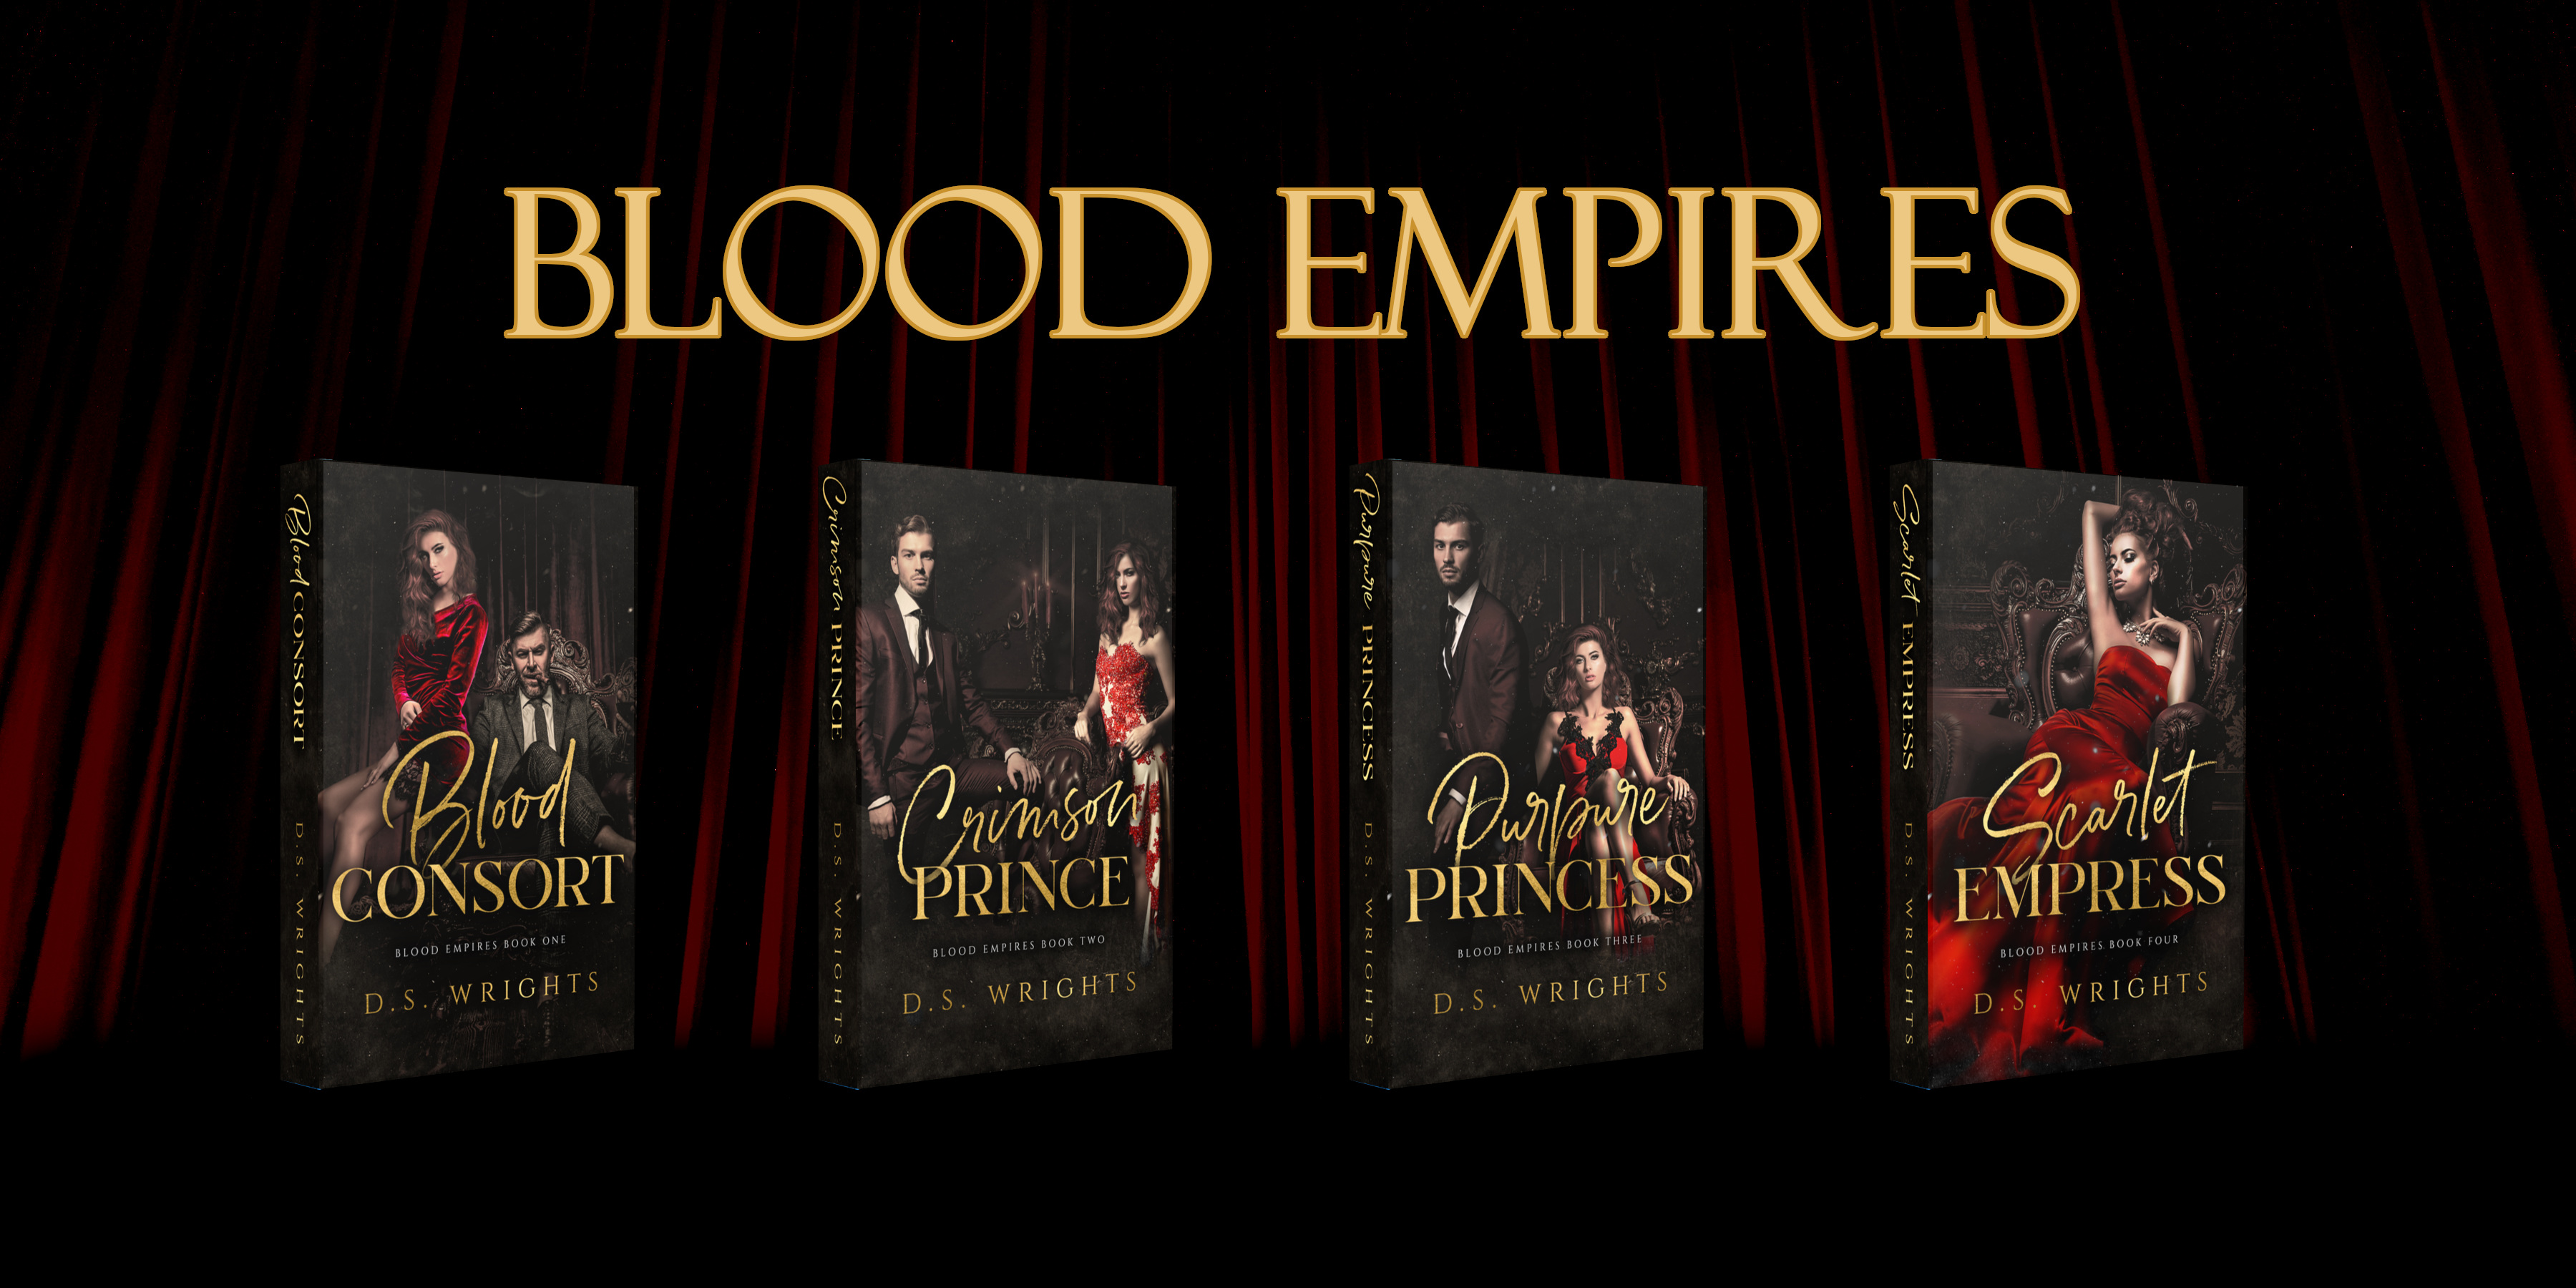 Blood Empires series by D.S. Wrights